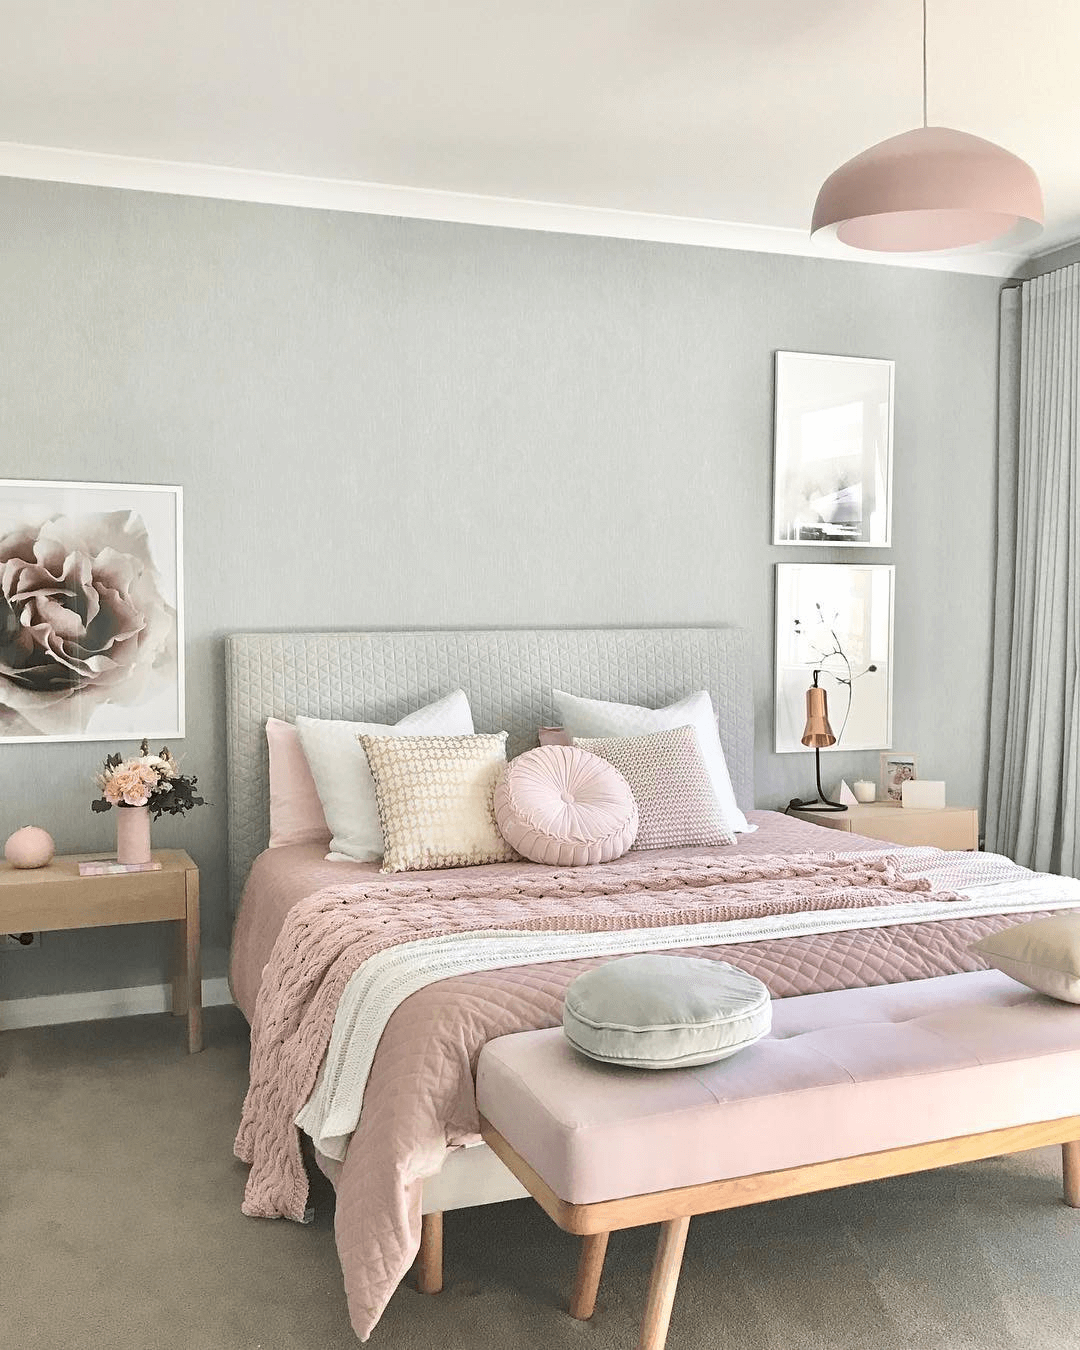 Fluttering Tiny Bedroom Ideas For Couples Small House Tips Bedroom Interior Bedroom Color Schemes Home Decor Bedroom